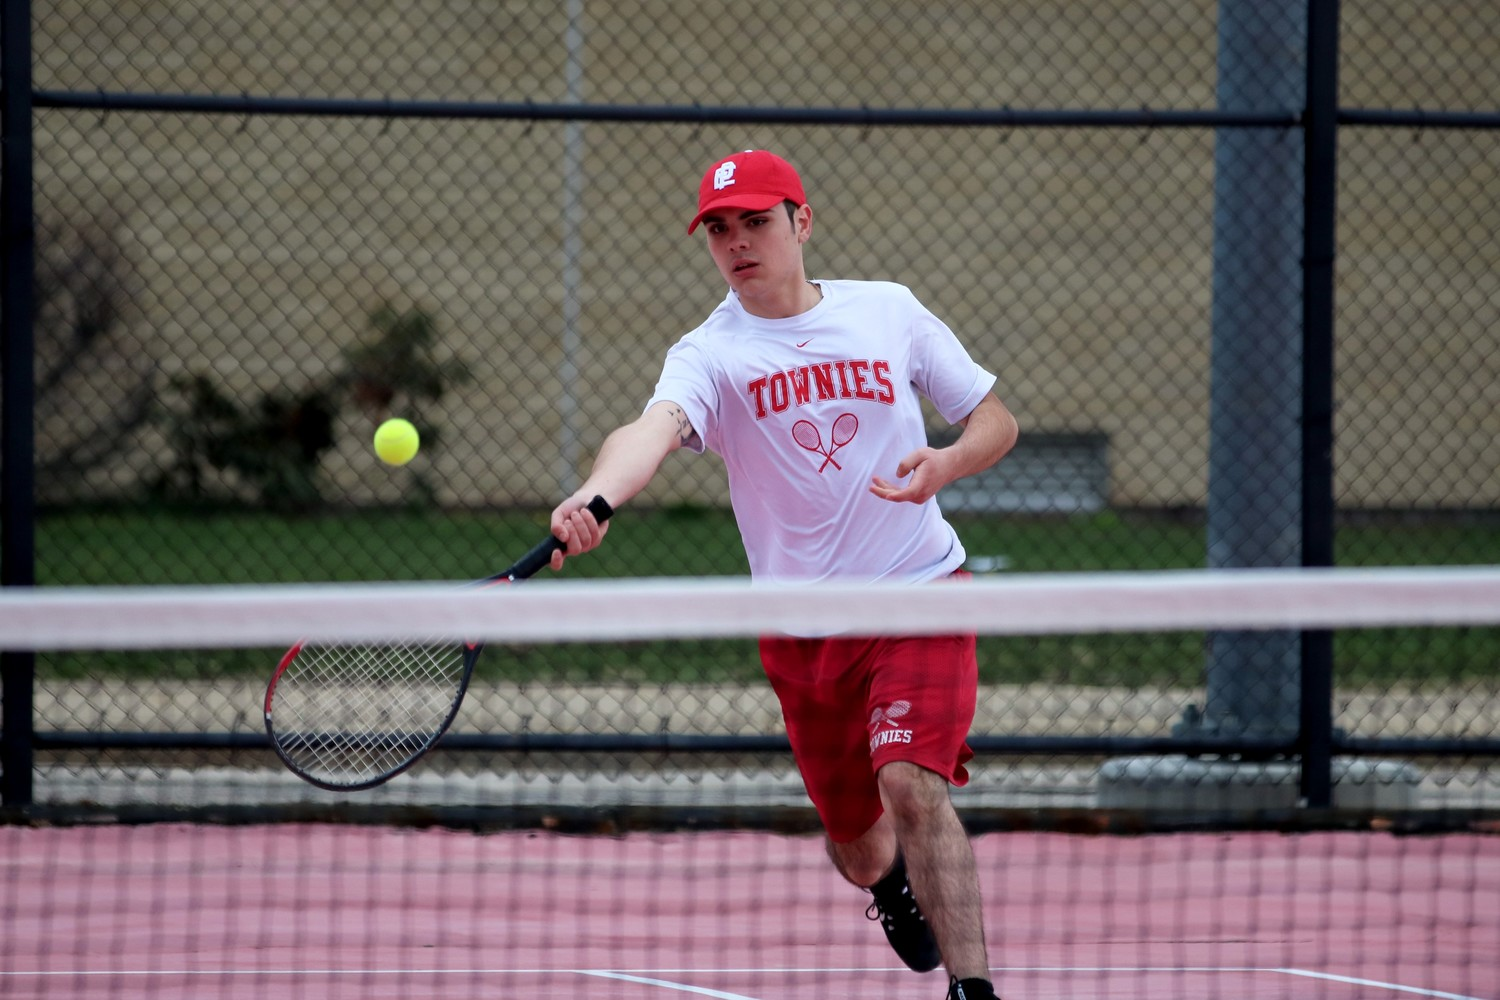 Kyle Desmarais of the EP tennis team.